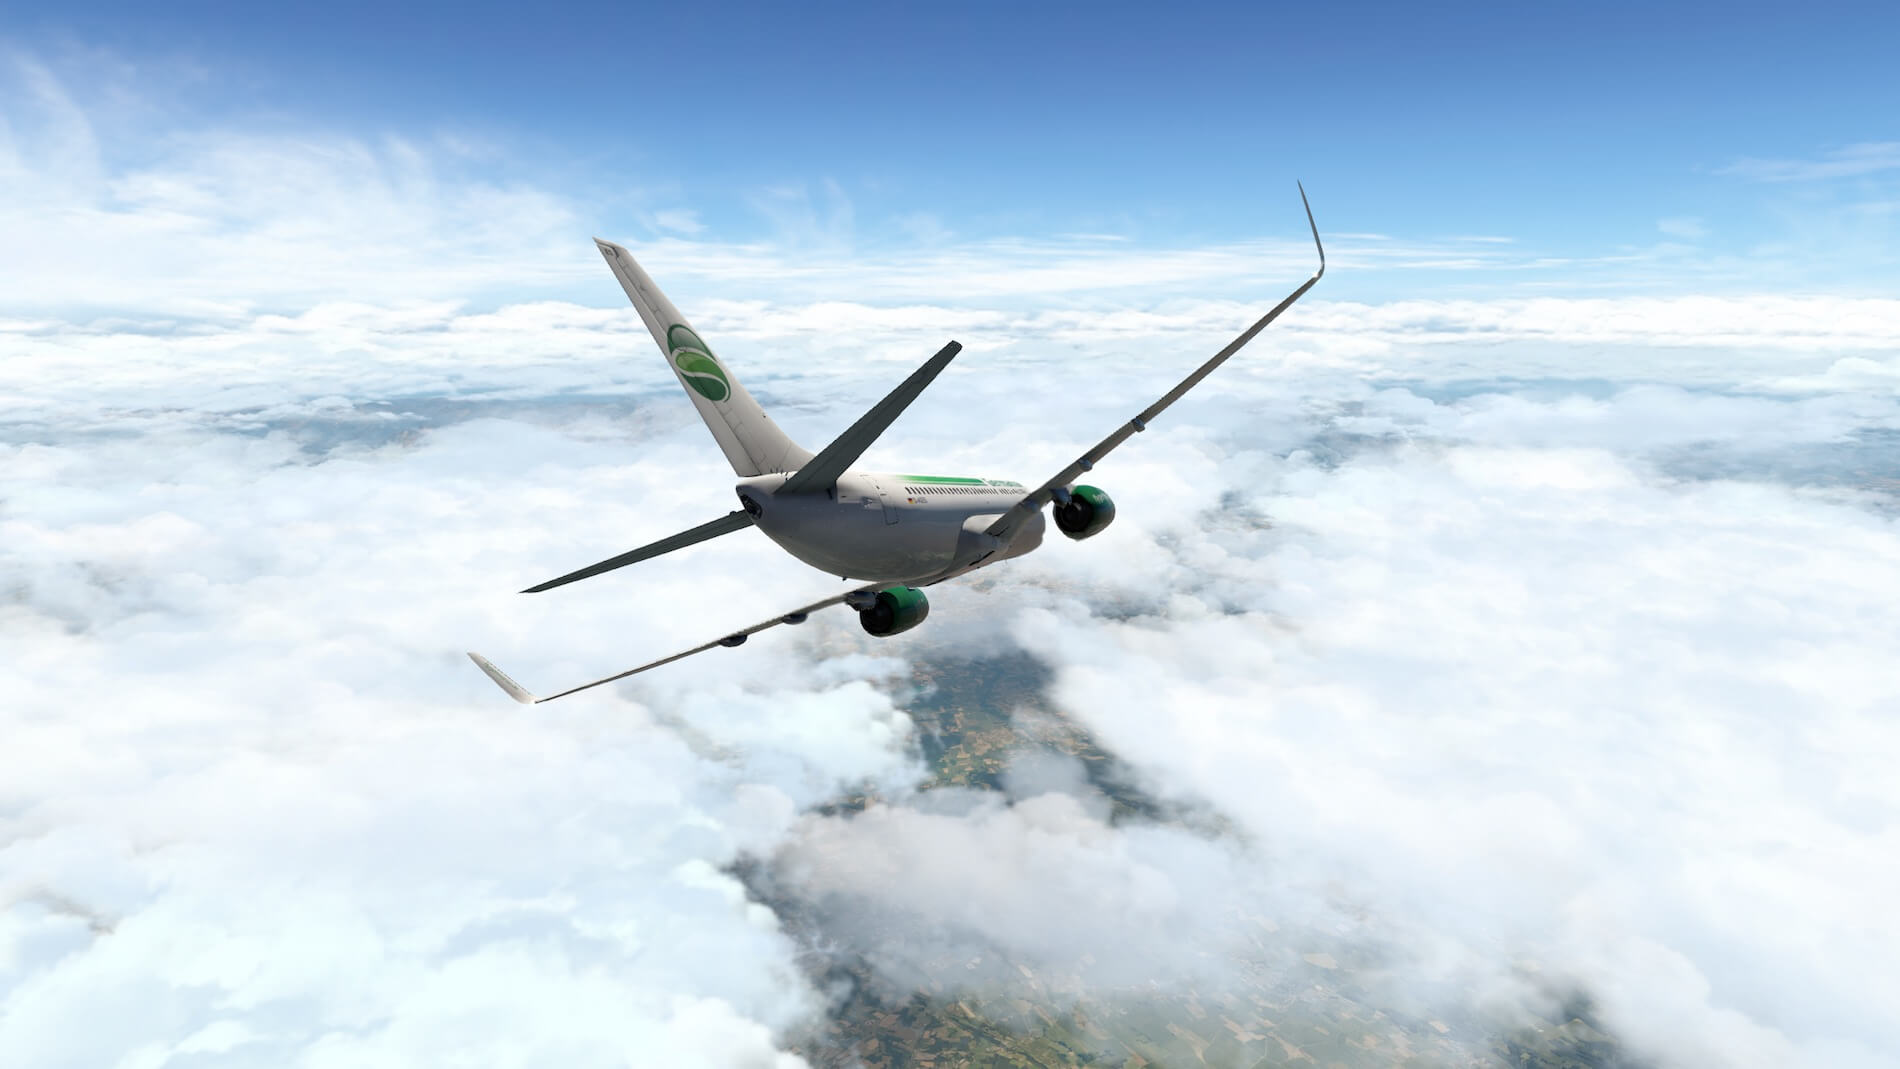 x737project 737-700 Impression | X-Plained, the Source for